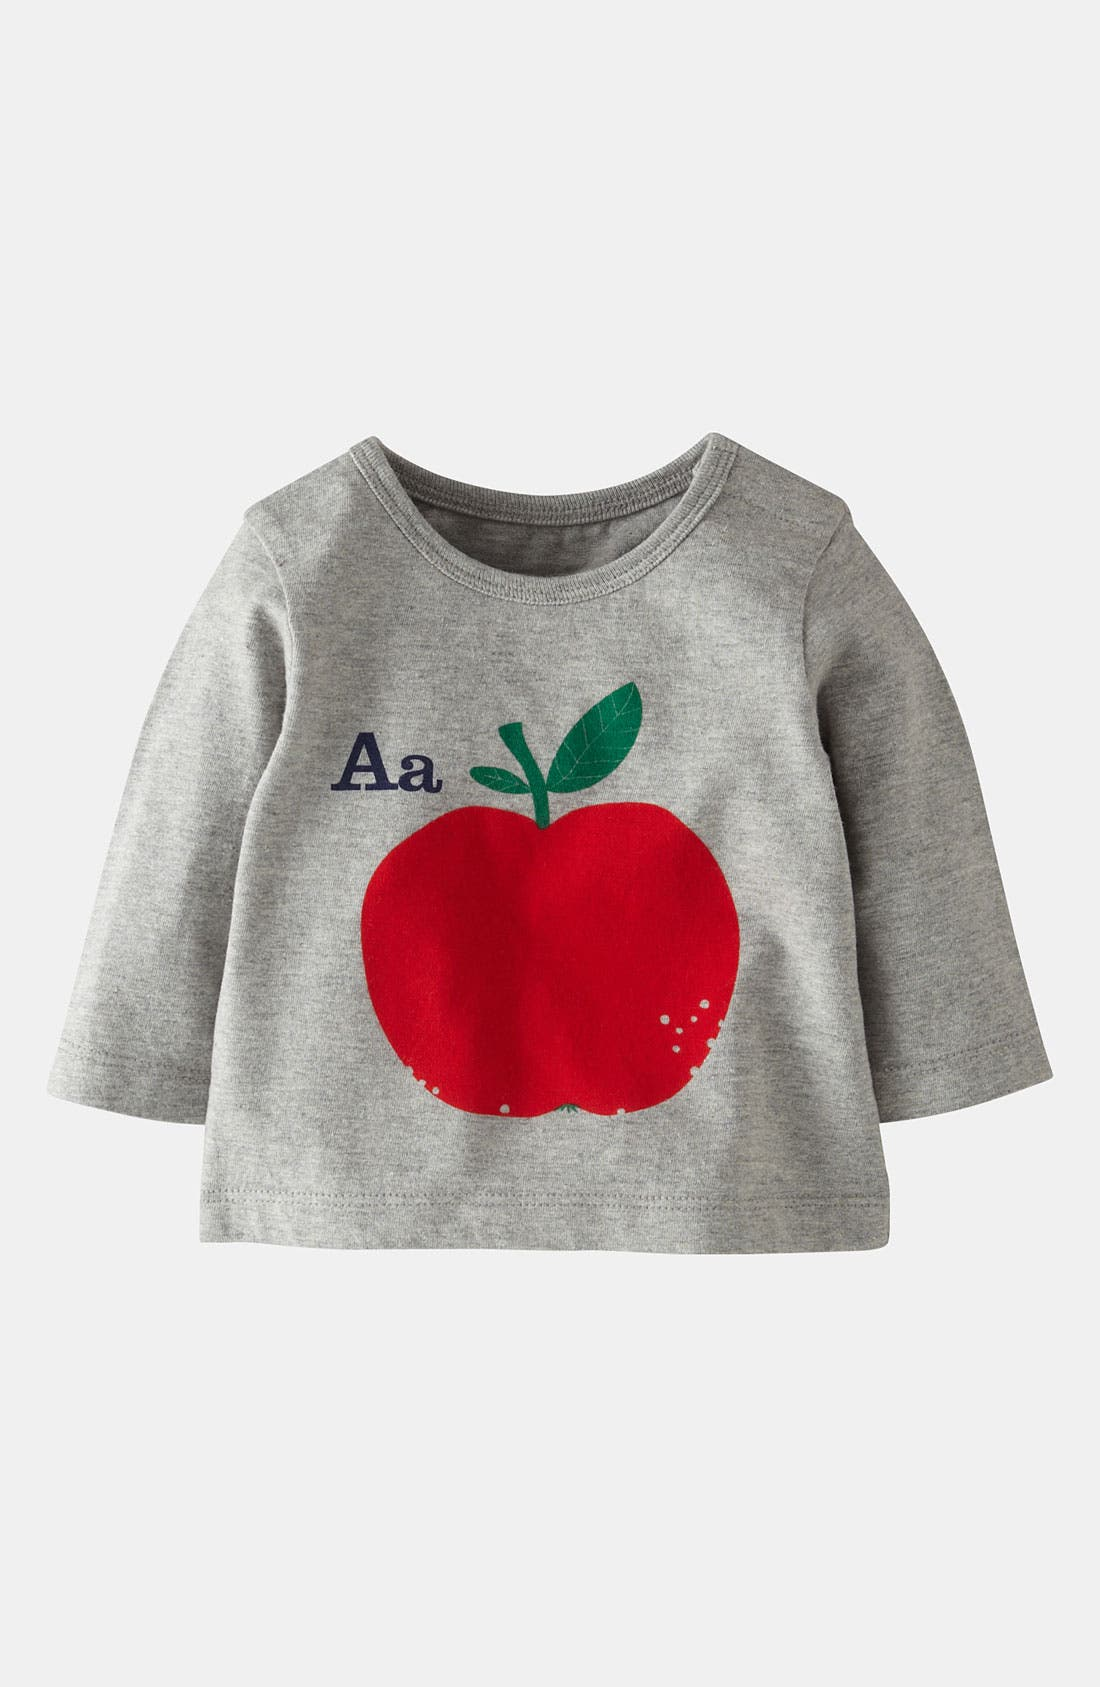 Main Image - Mini Boden 'Alphabet Print' T-Shirt (Infant)